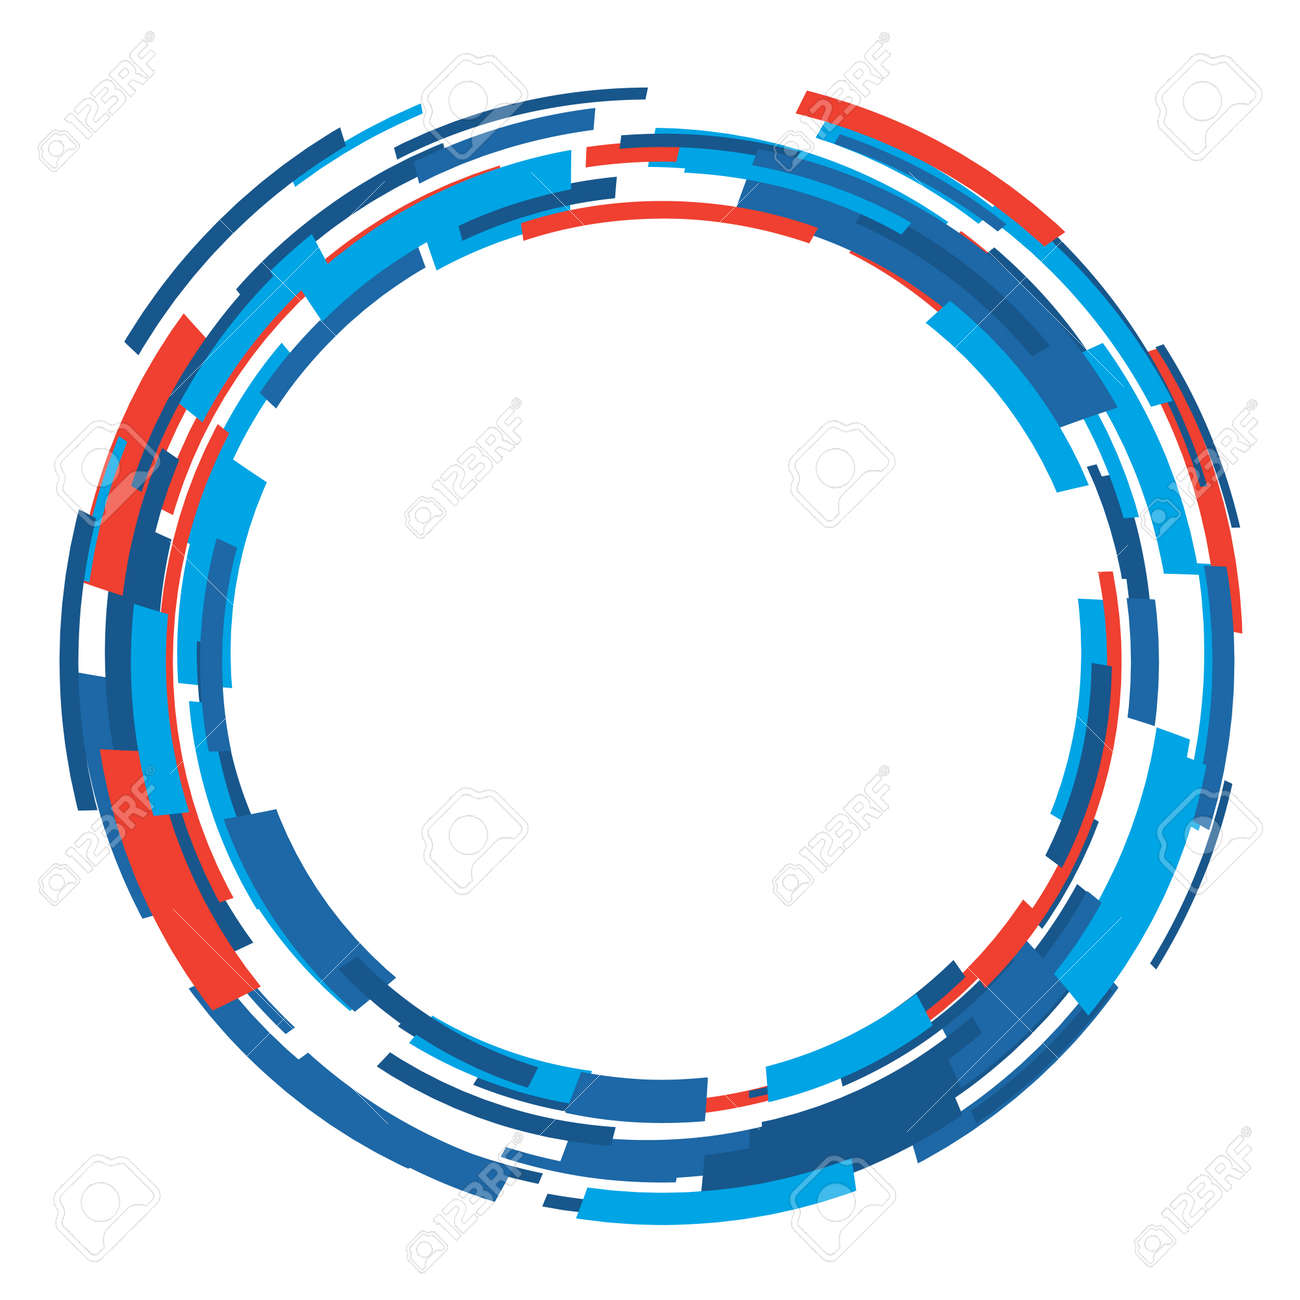 Vector abstract circle shape layout design template. Modern background art style. - 145510130